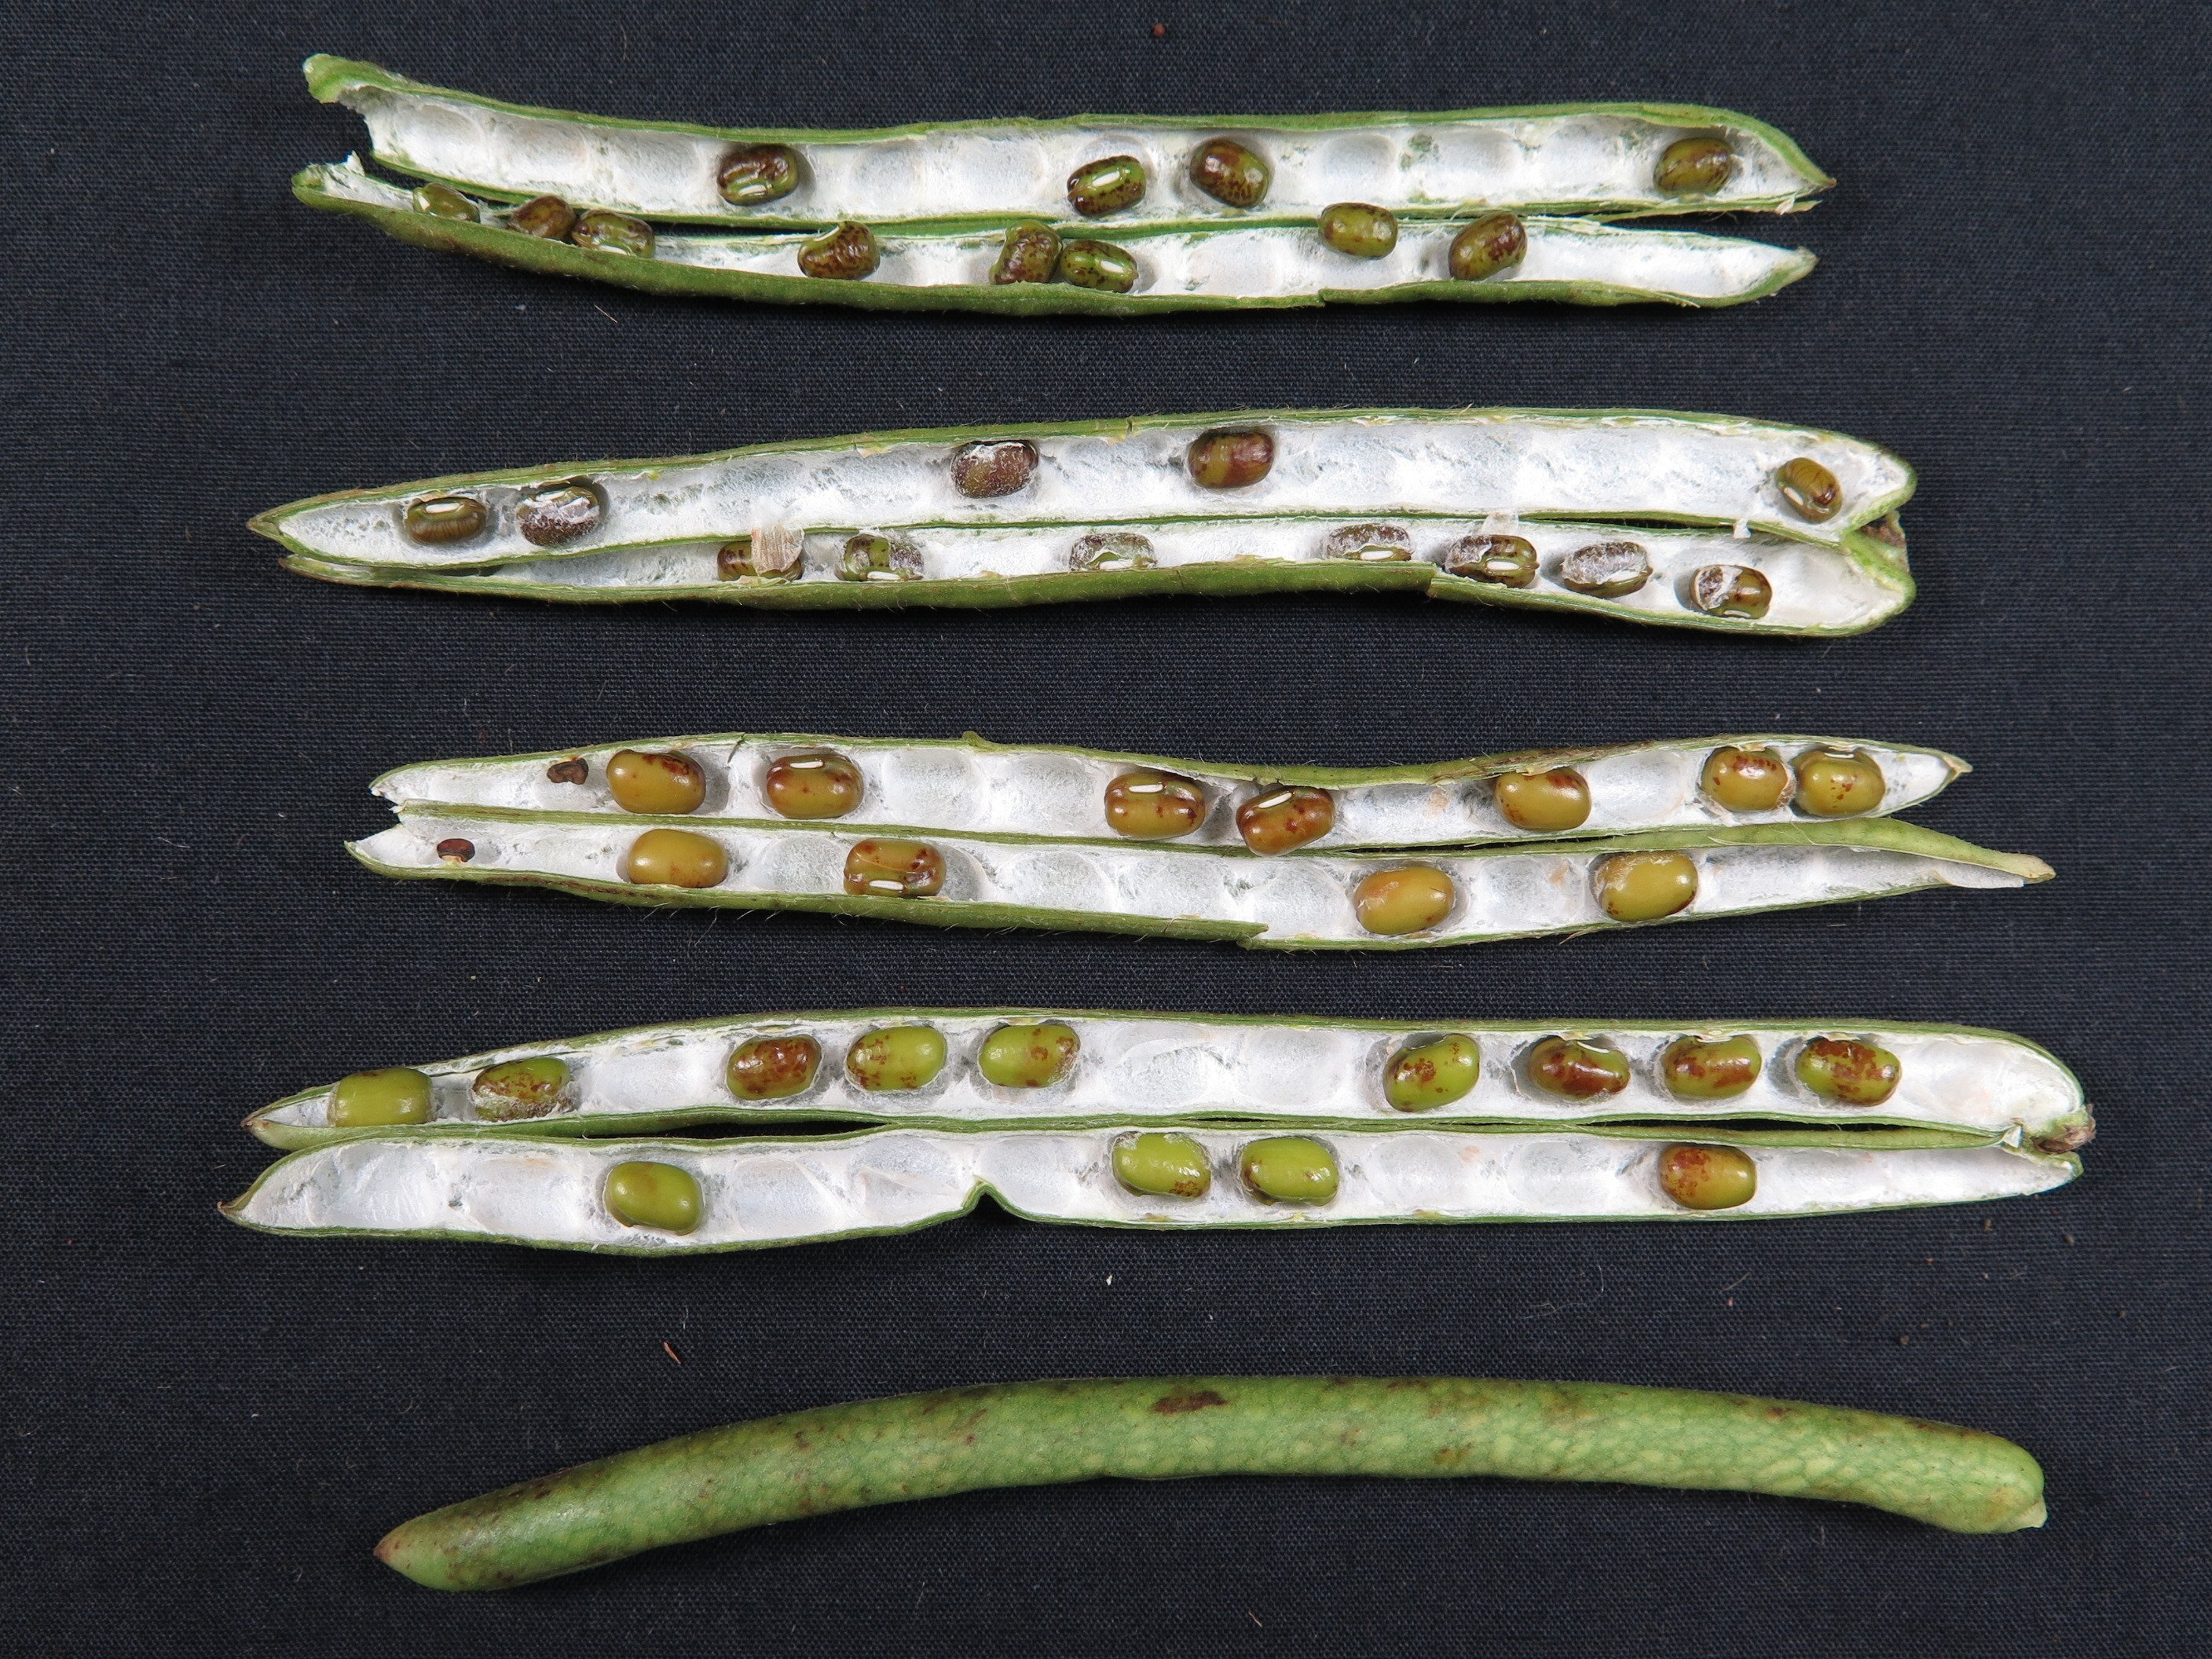 Puffy pod symptoms in phytoplasma-infected mungbeans with netted pattern on pods and shrivelled, brown seeds.